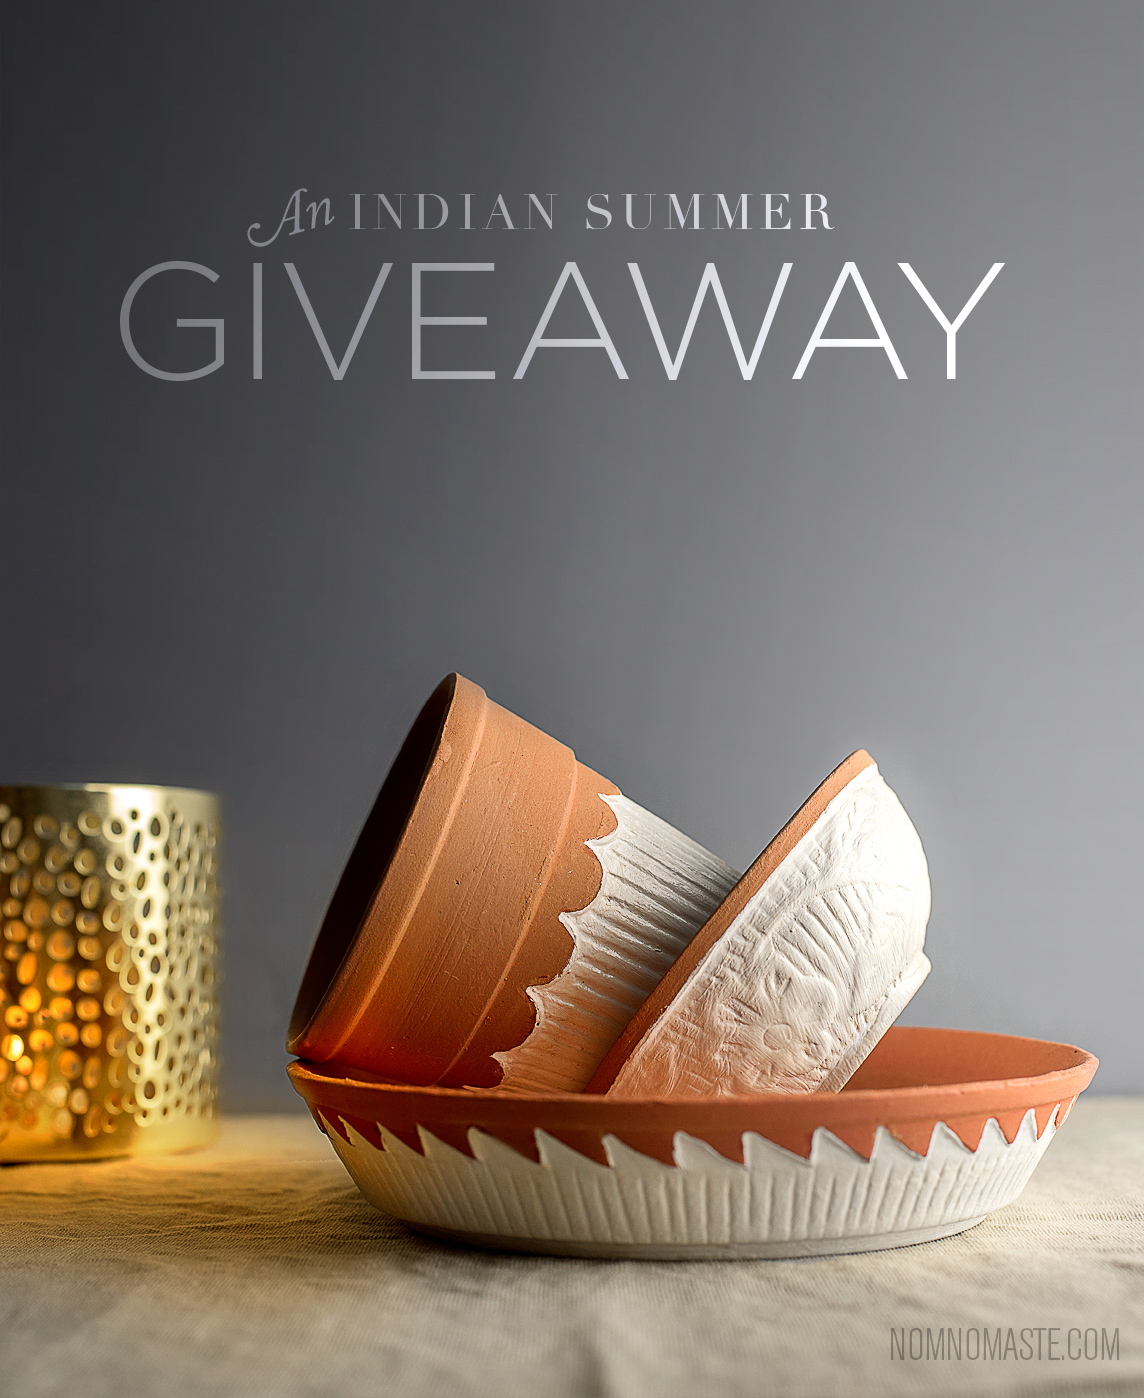 Anniversary-Giveaway-Sweepstakes-SayNomaste_1_HOME